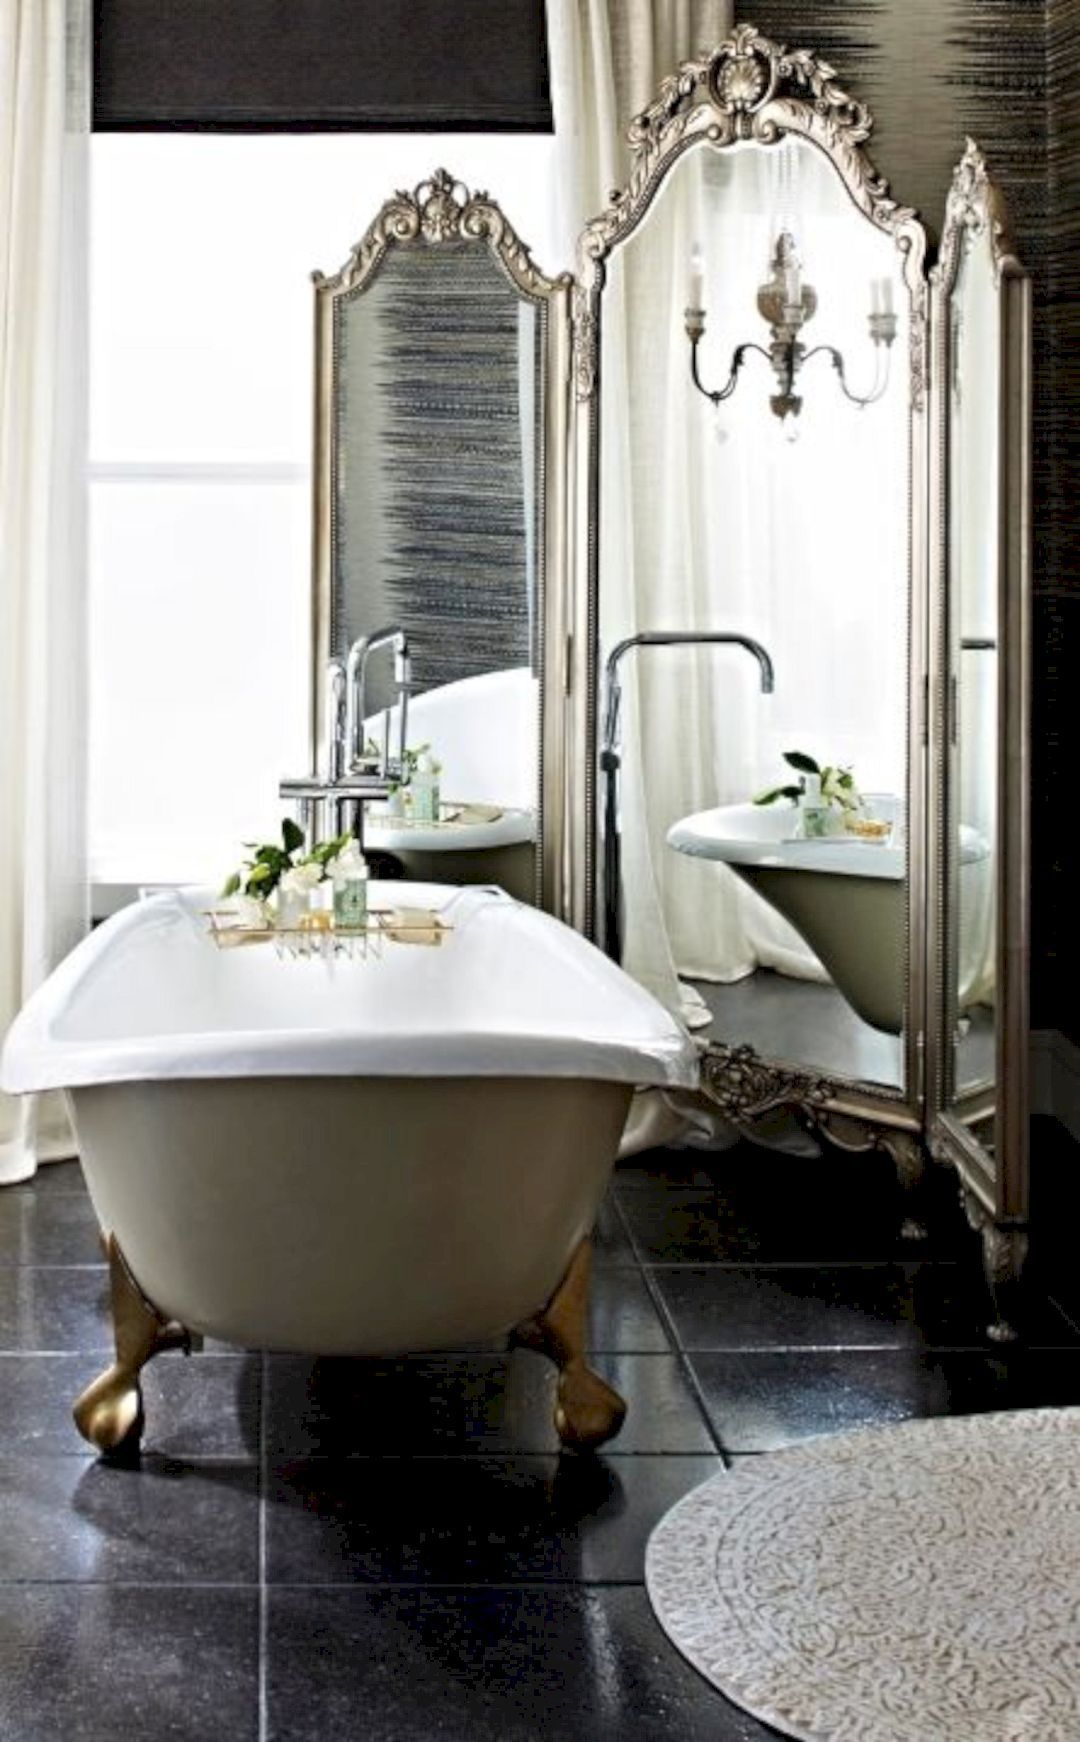 3 Interior Design Ideas That Could Change Your Whole Life Home Bathroom Decor Home Decor French decorating ideas bathrooms